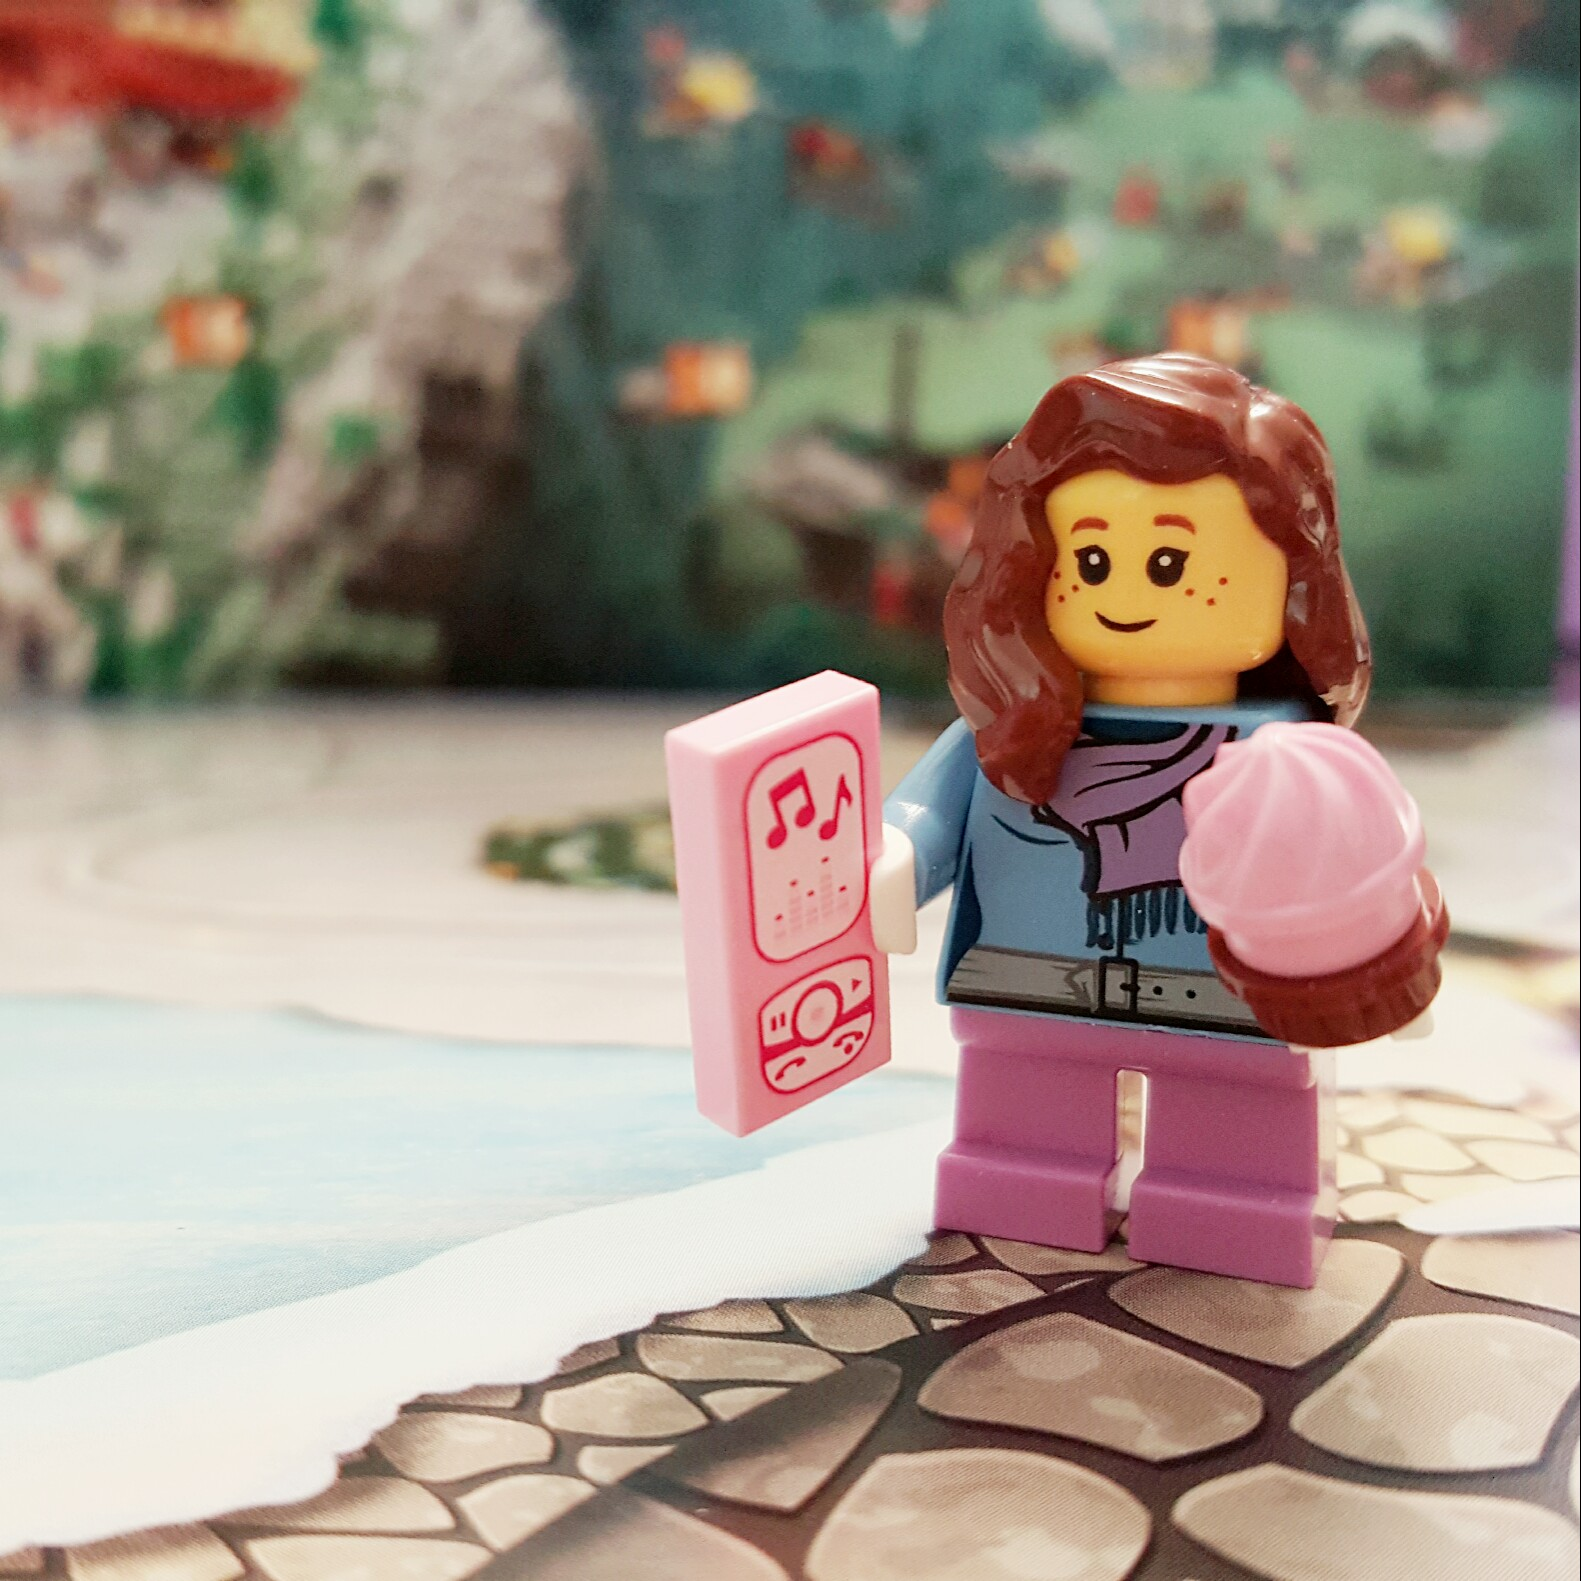 Cupcakes and Music - Day 19 Girl Minifigure from LEGO City Advent Calendar